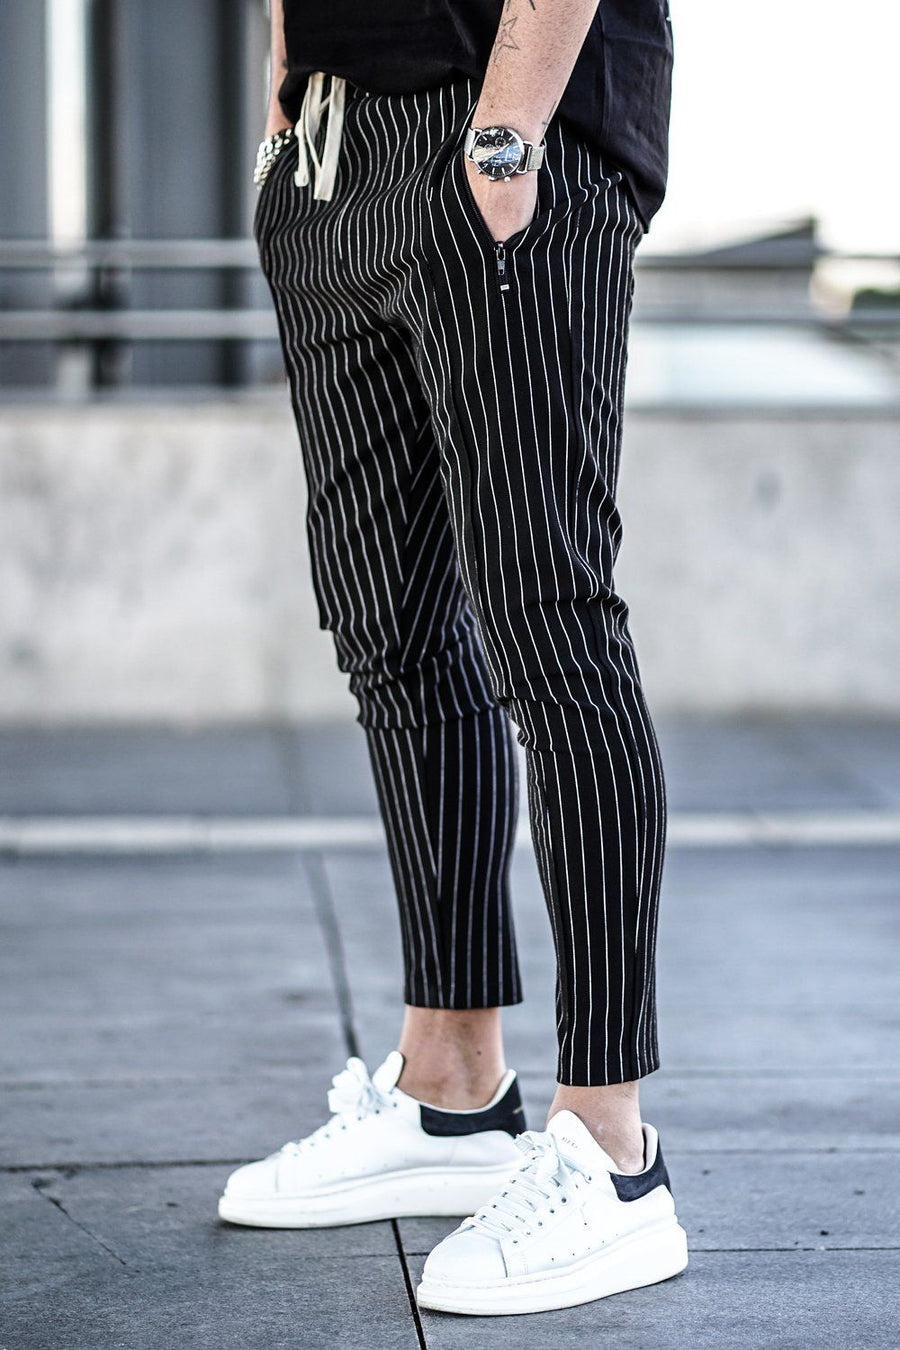 GTL PEGADOR - Clooney Pinstripe Pants Black - PEGADOR - Dominate the Hype